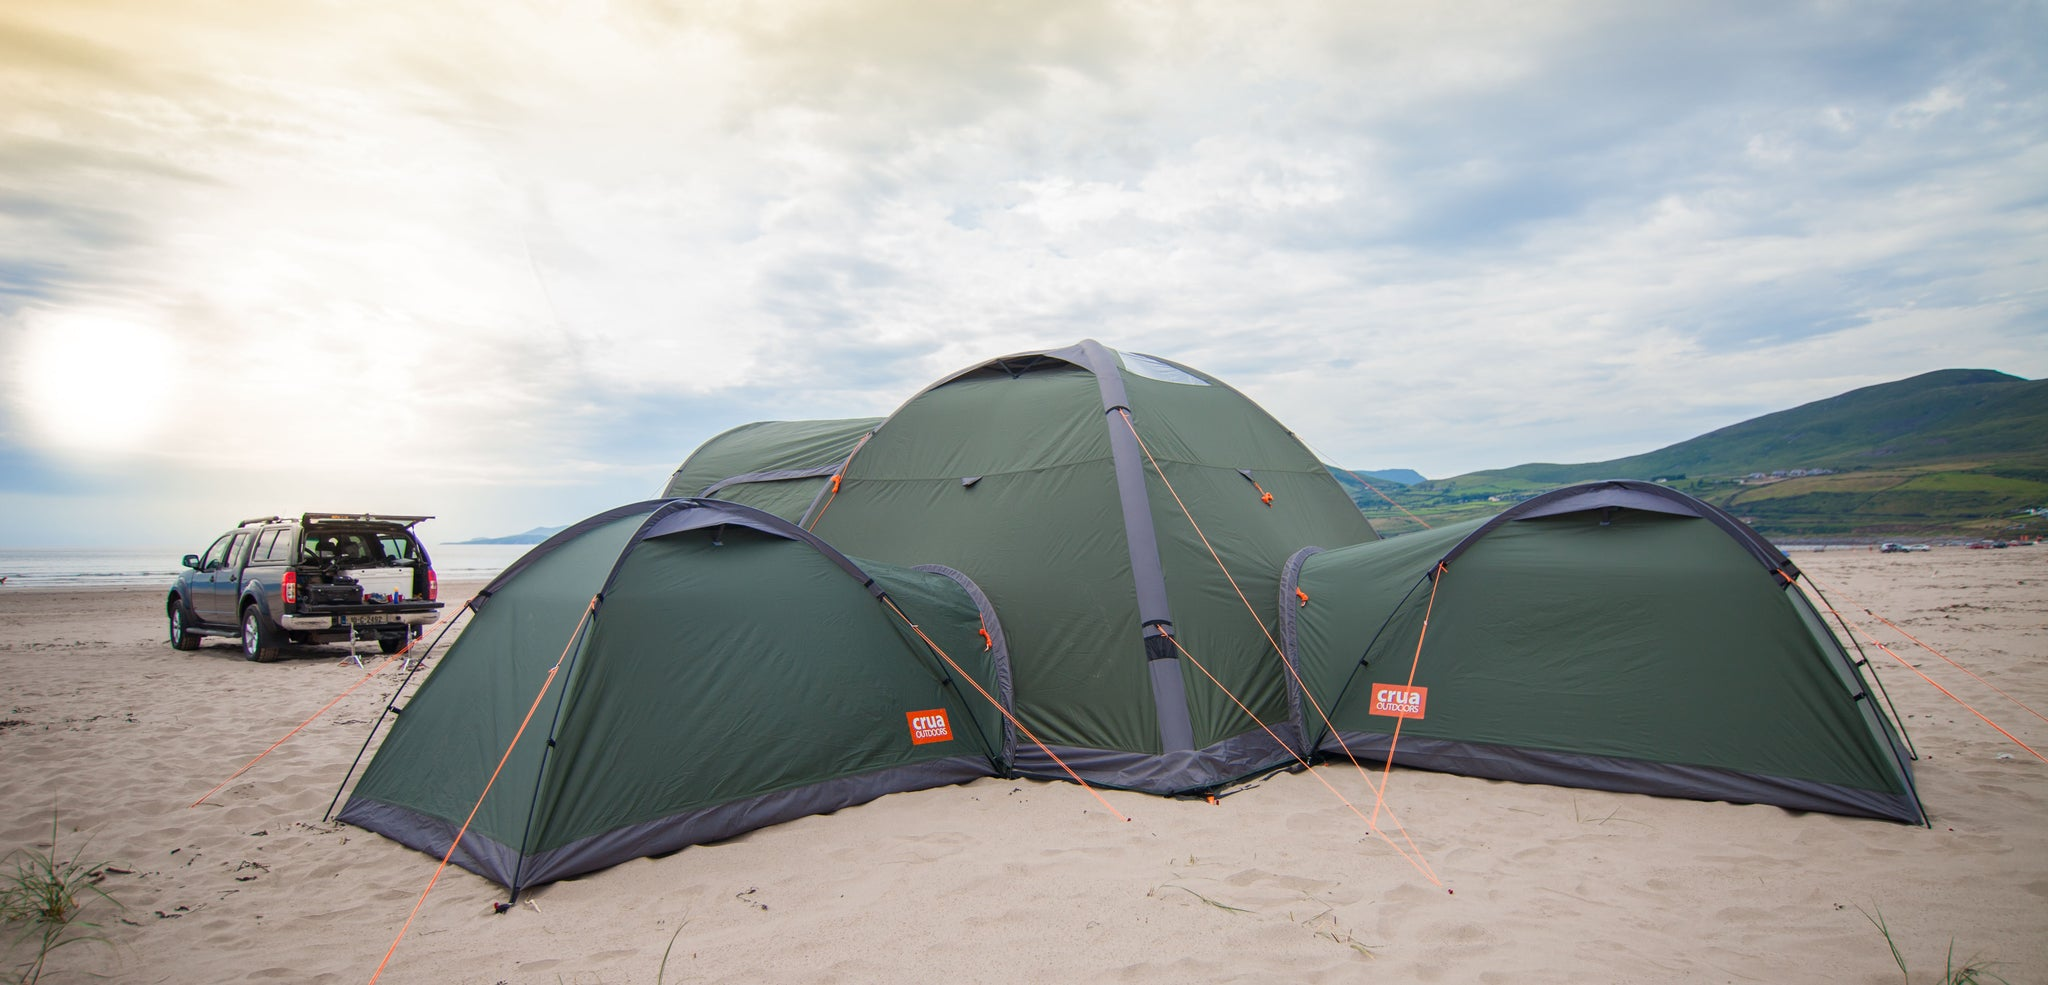 Crua Outdoors is famous for their high quality insulated tents. The Crua Clan is no different. & The Crua Clan - The tent youu0027ve always wanted u2013 Crua Outdoors